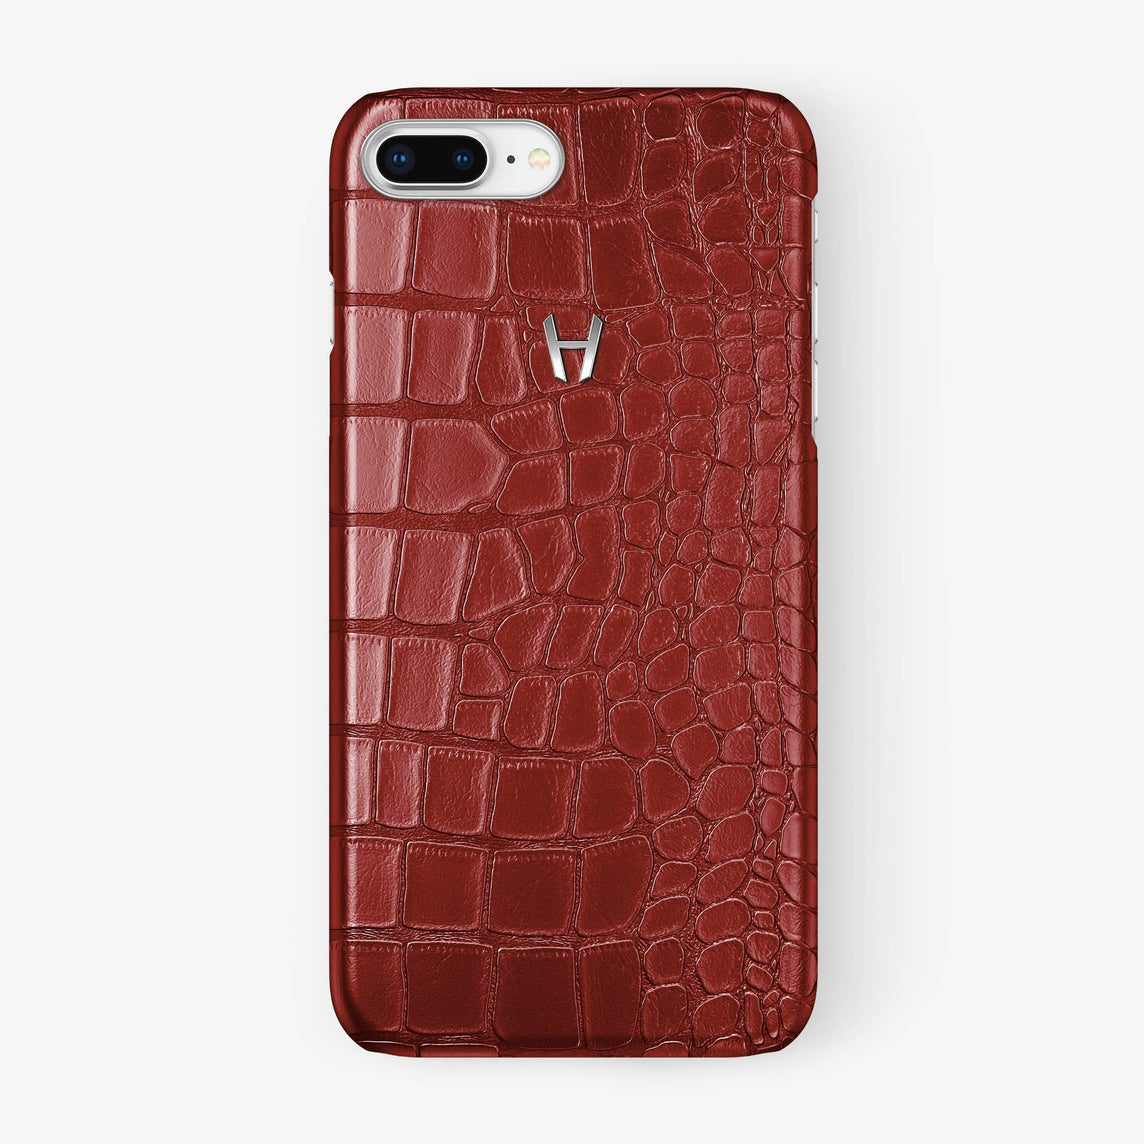 Alligator Case iPhone 7/8 Plus | Red - Stainless Steel - Hadoro